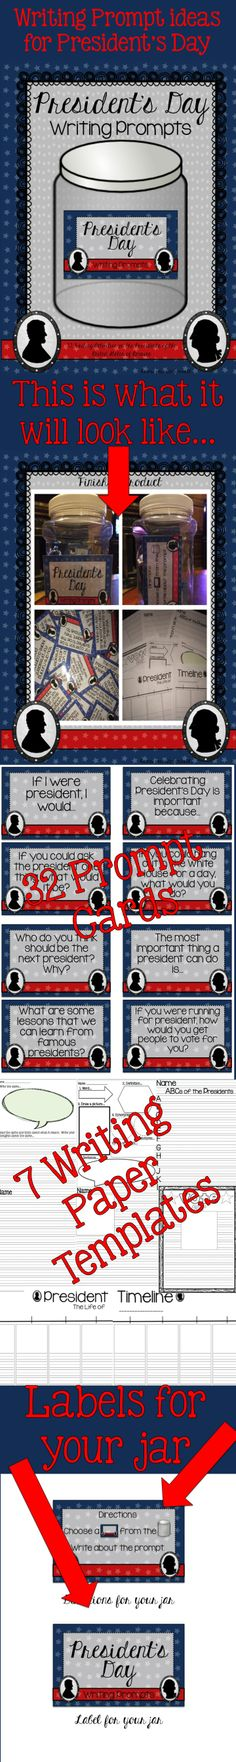 CAMPAIGN POSTERS - (MAKE A MODERN DAY POSTER FOR A PRESIDENT FROM HISTORY! ) CROSS CURRICULAR      President's Day Writing Prompts